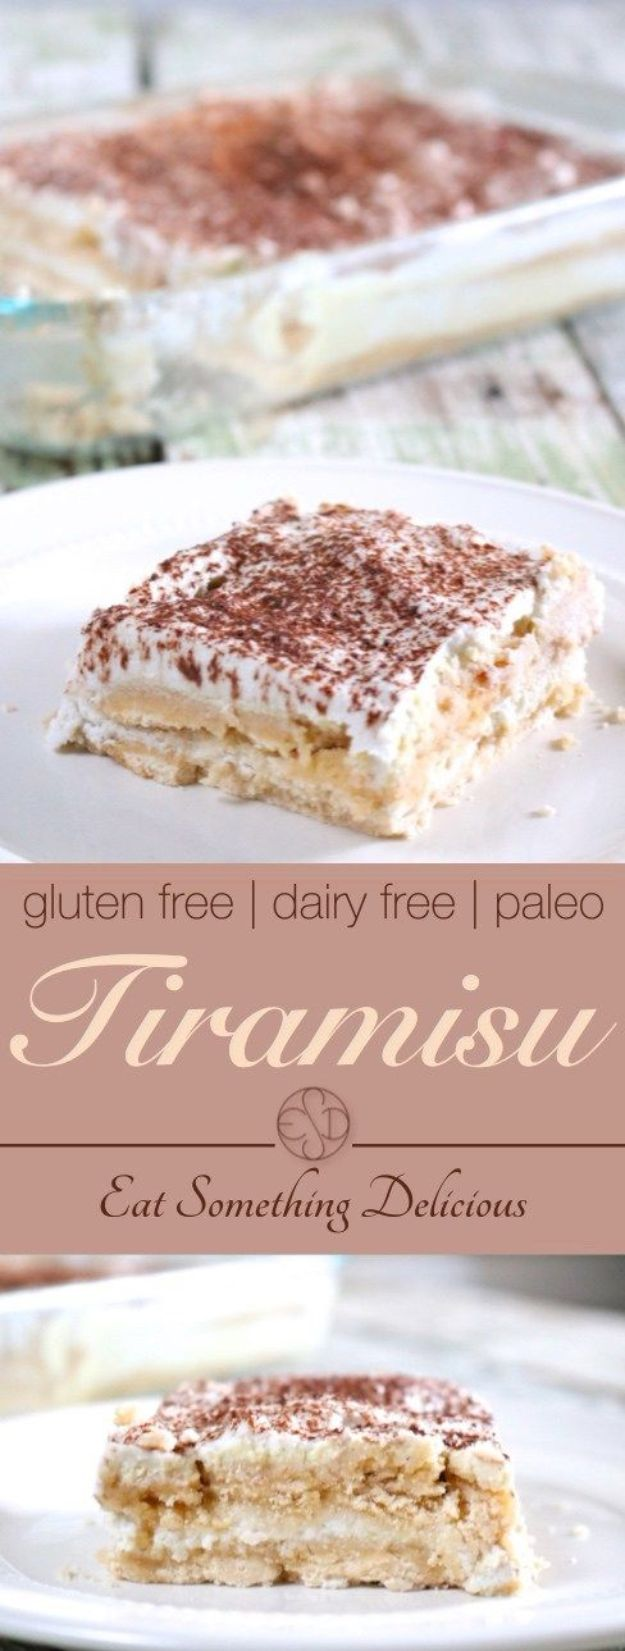 Gluten Free Desserts - Gluten Free Tiramisu - Easy Recipes and Healthy Recipe Ideas for Cookies, Cake, Pie, Cupcakes, Cheesecake and Ice Cream - Best No Sugar Glutenfree Chocolate, No Bake Dessert, Fruit, Peach, Apple and Banana Dishes - Flourless Christmas, Thanksgiving and Holiday Dishes http://diyjoy.com/gluten-free-desserts